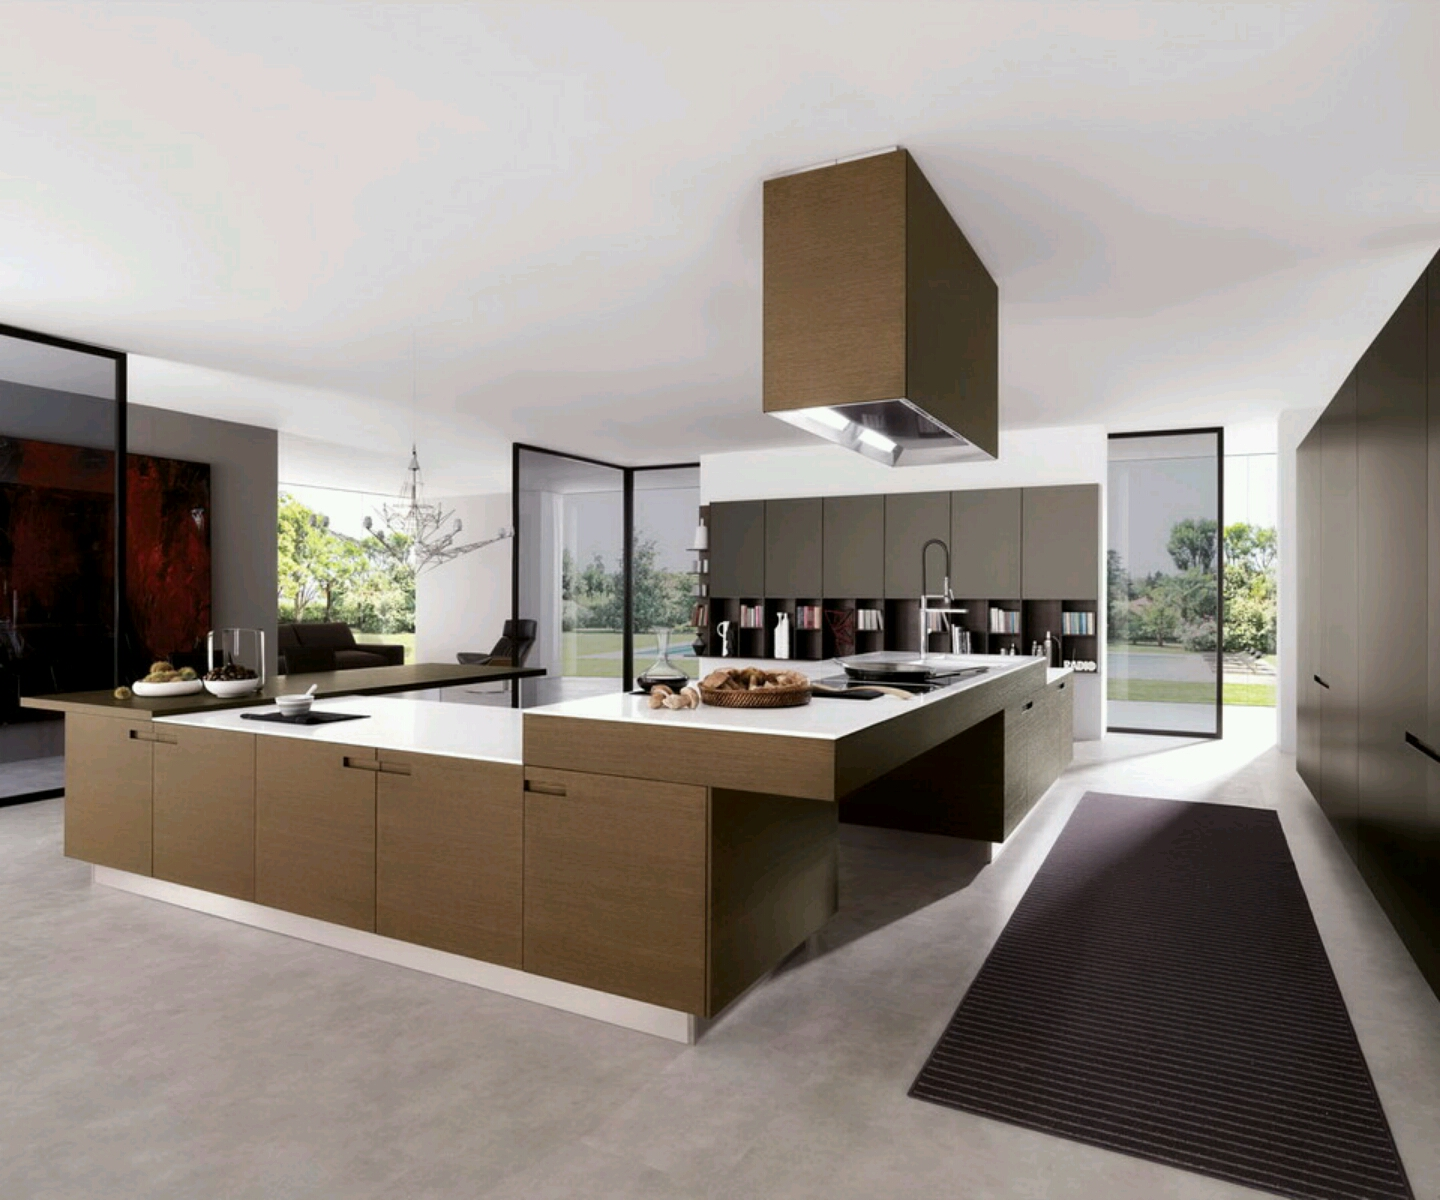 New home designs latest modern kitchen cabinets designs for New kitchen ideas